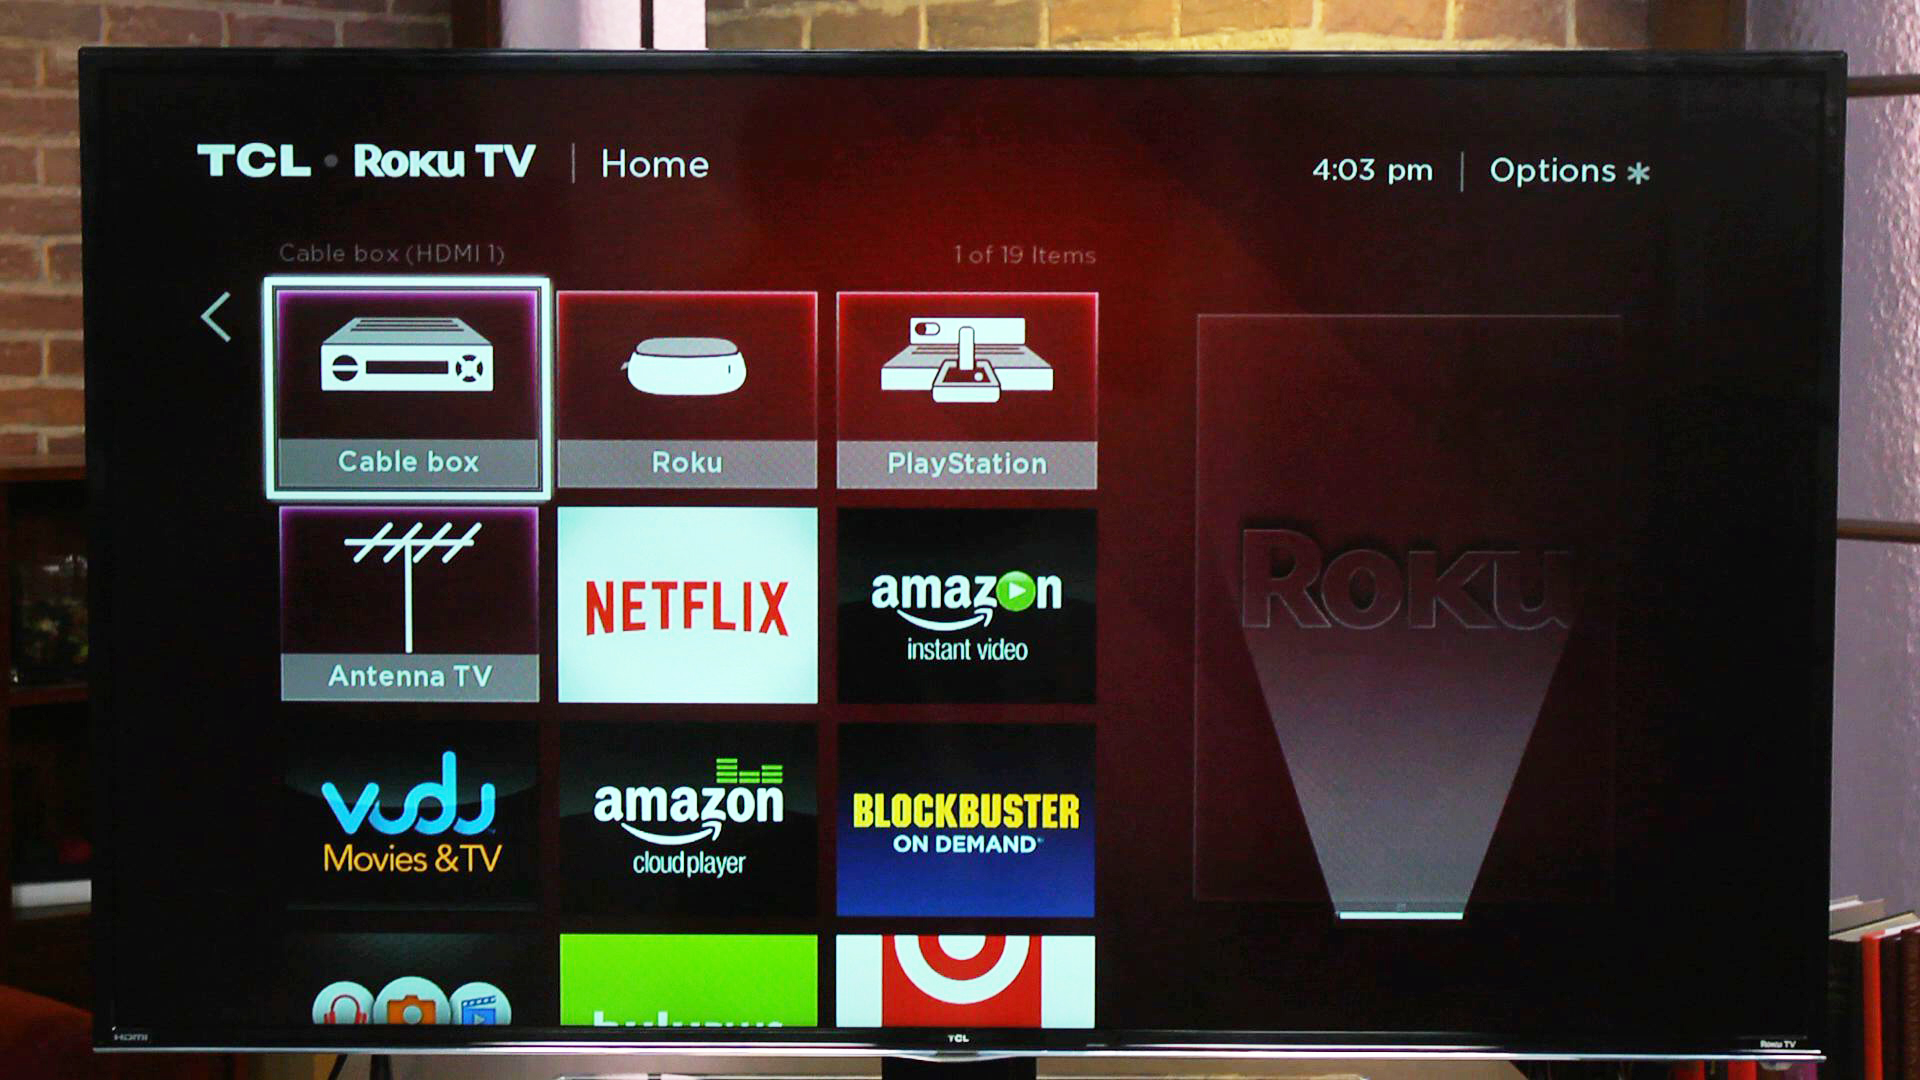 Video: TCL Roku TV: The best Smart TV app experience for the best price